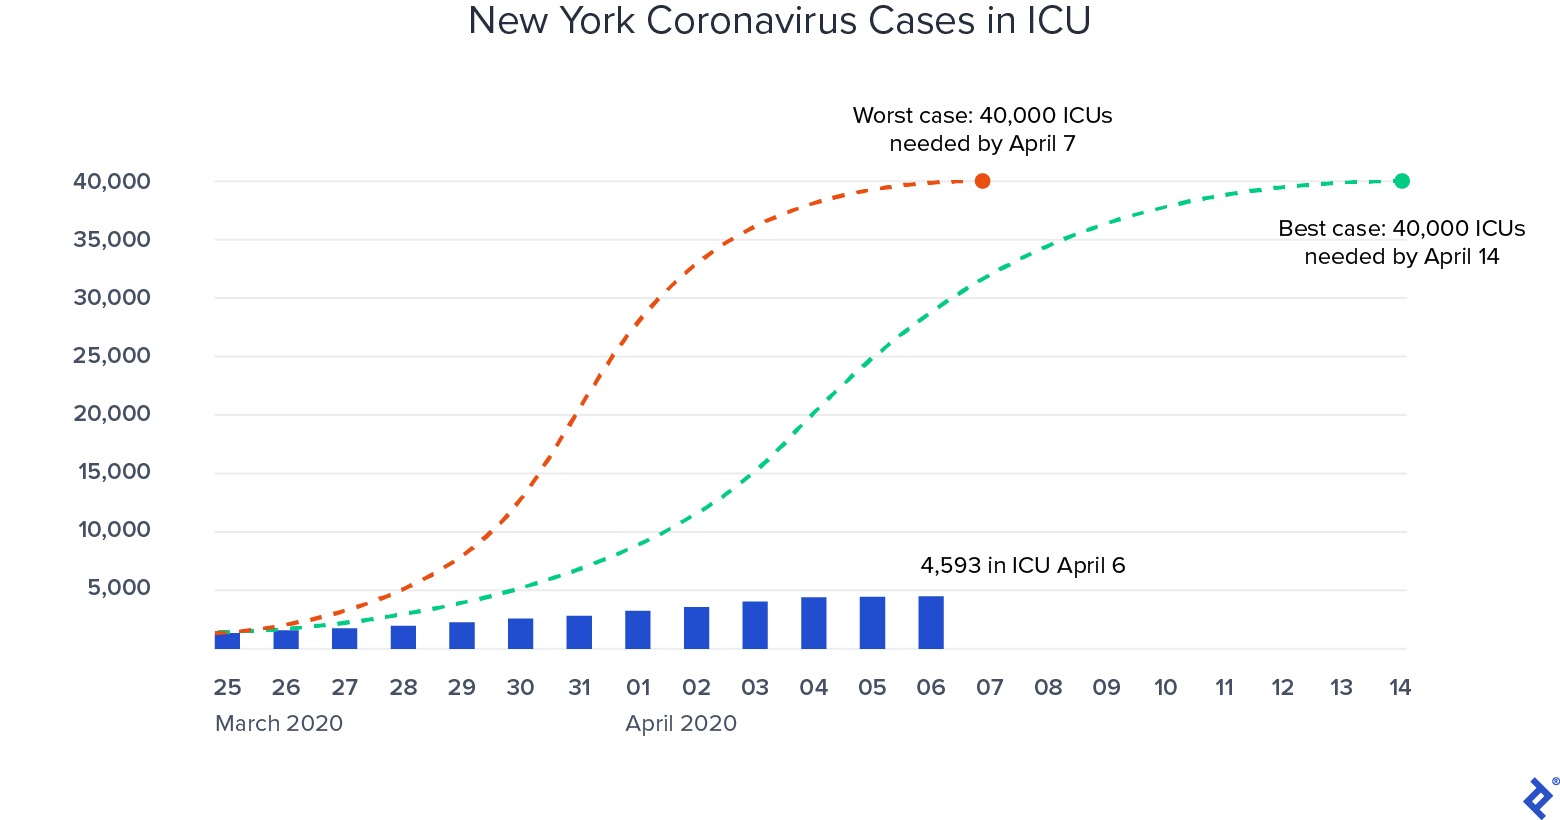 NYC COVID cases in ICU